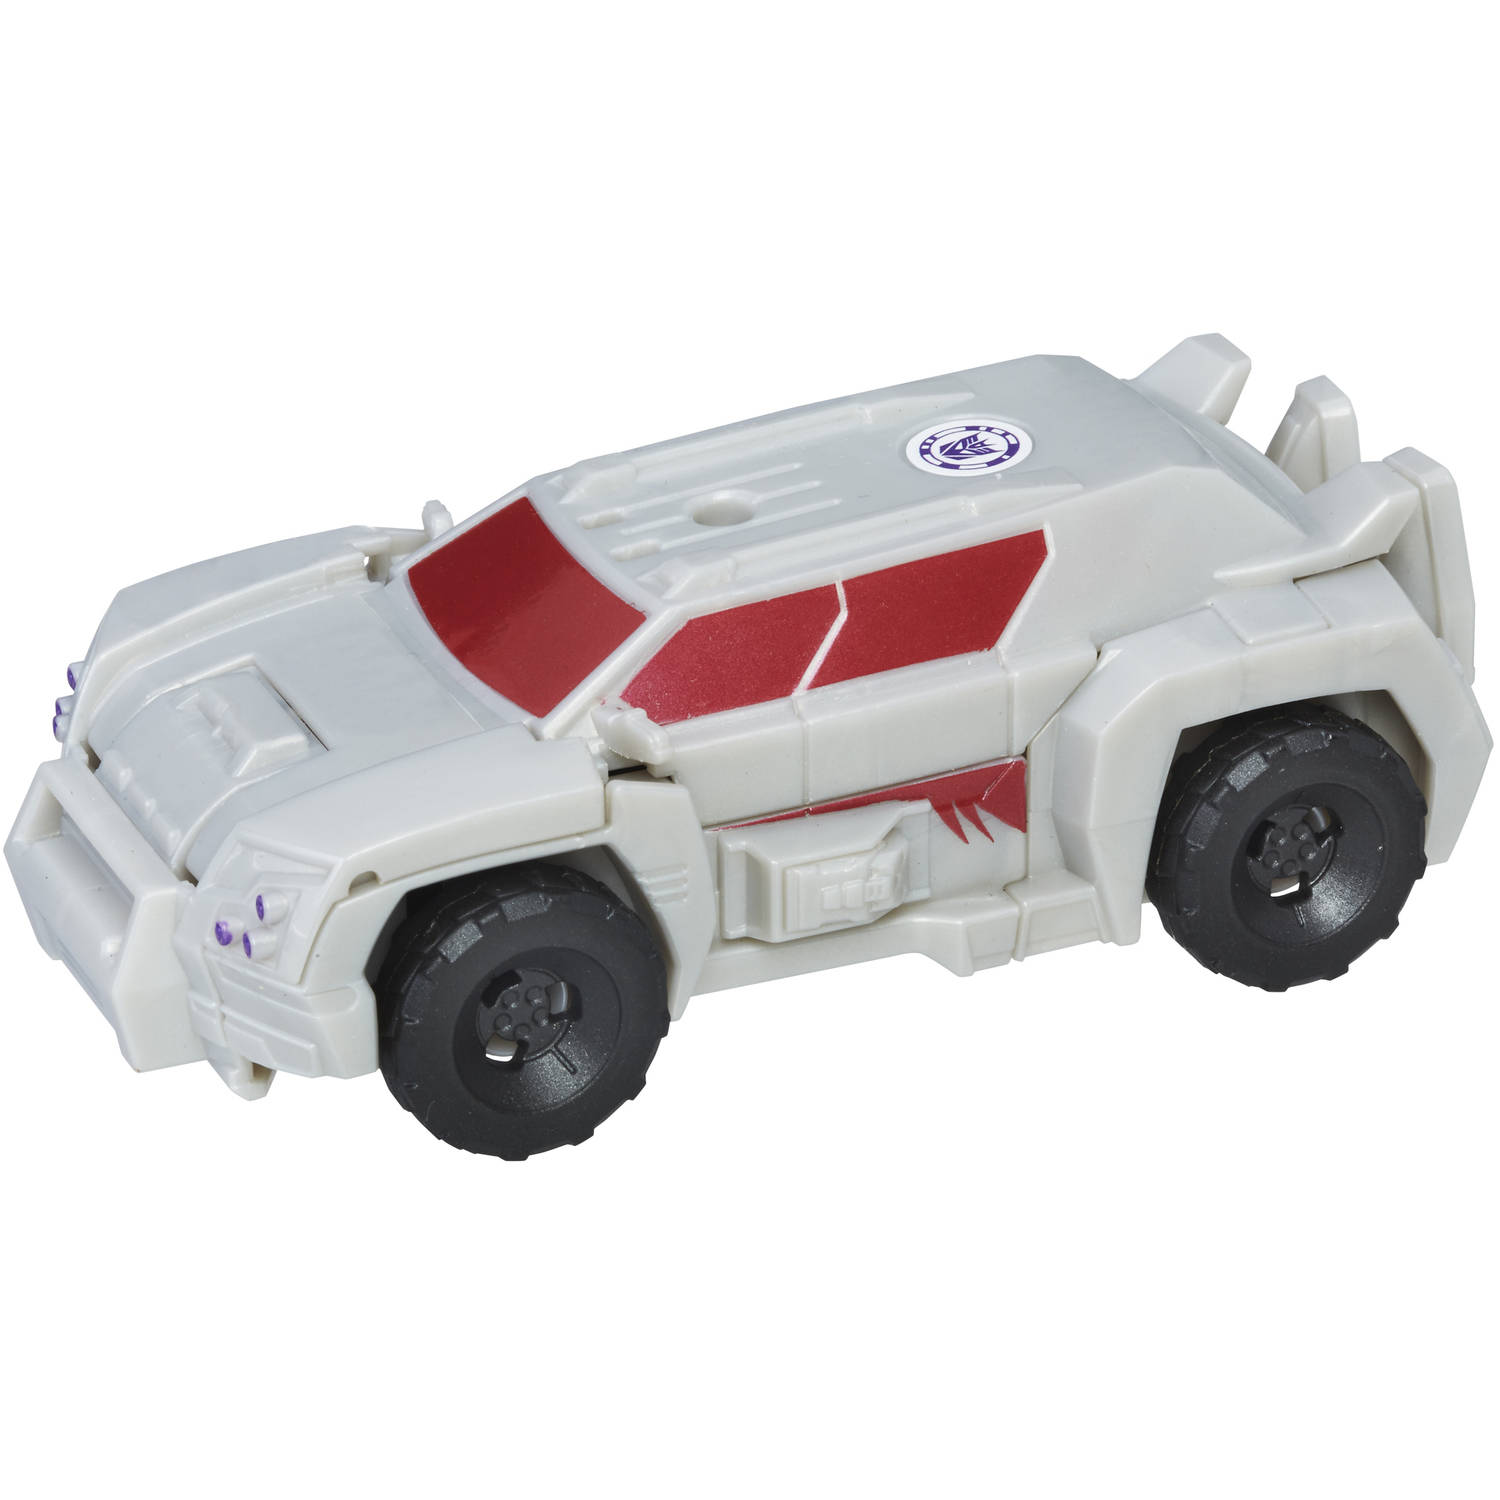 Transformers: Robots in Disguise Combiner Force 1-Step Changer Heatseeker by Hasbro